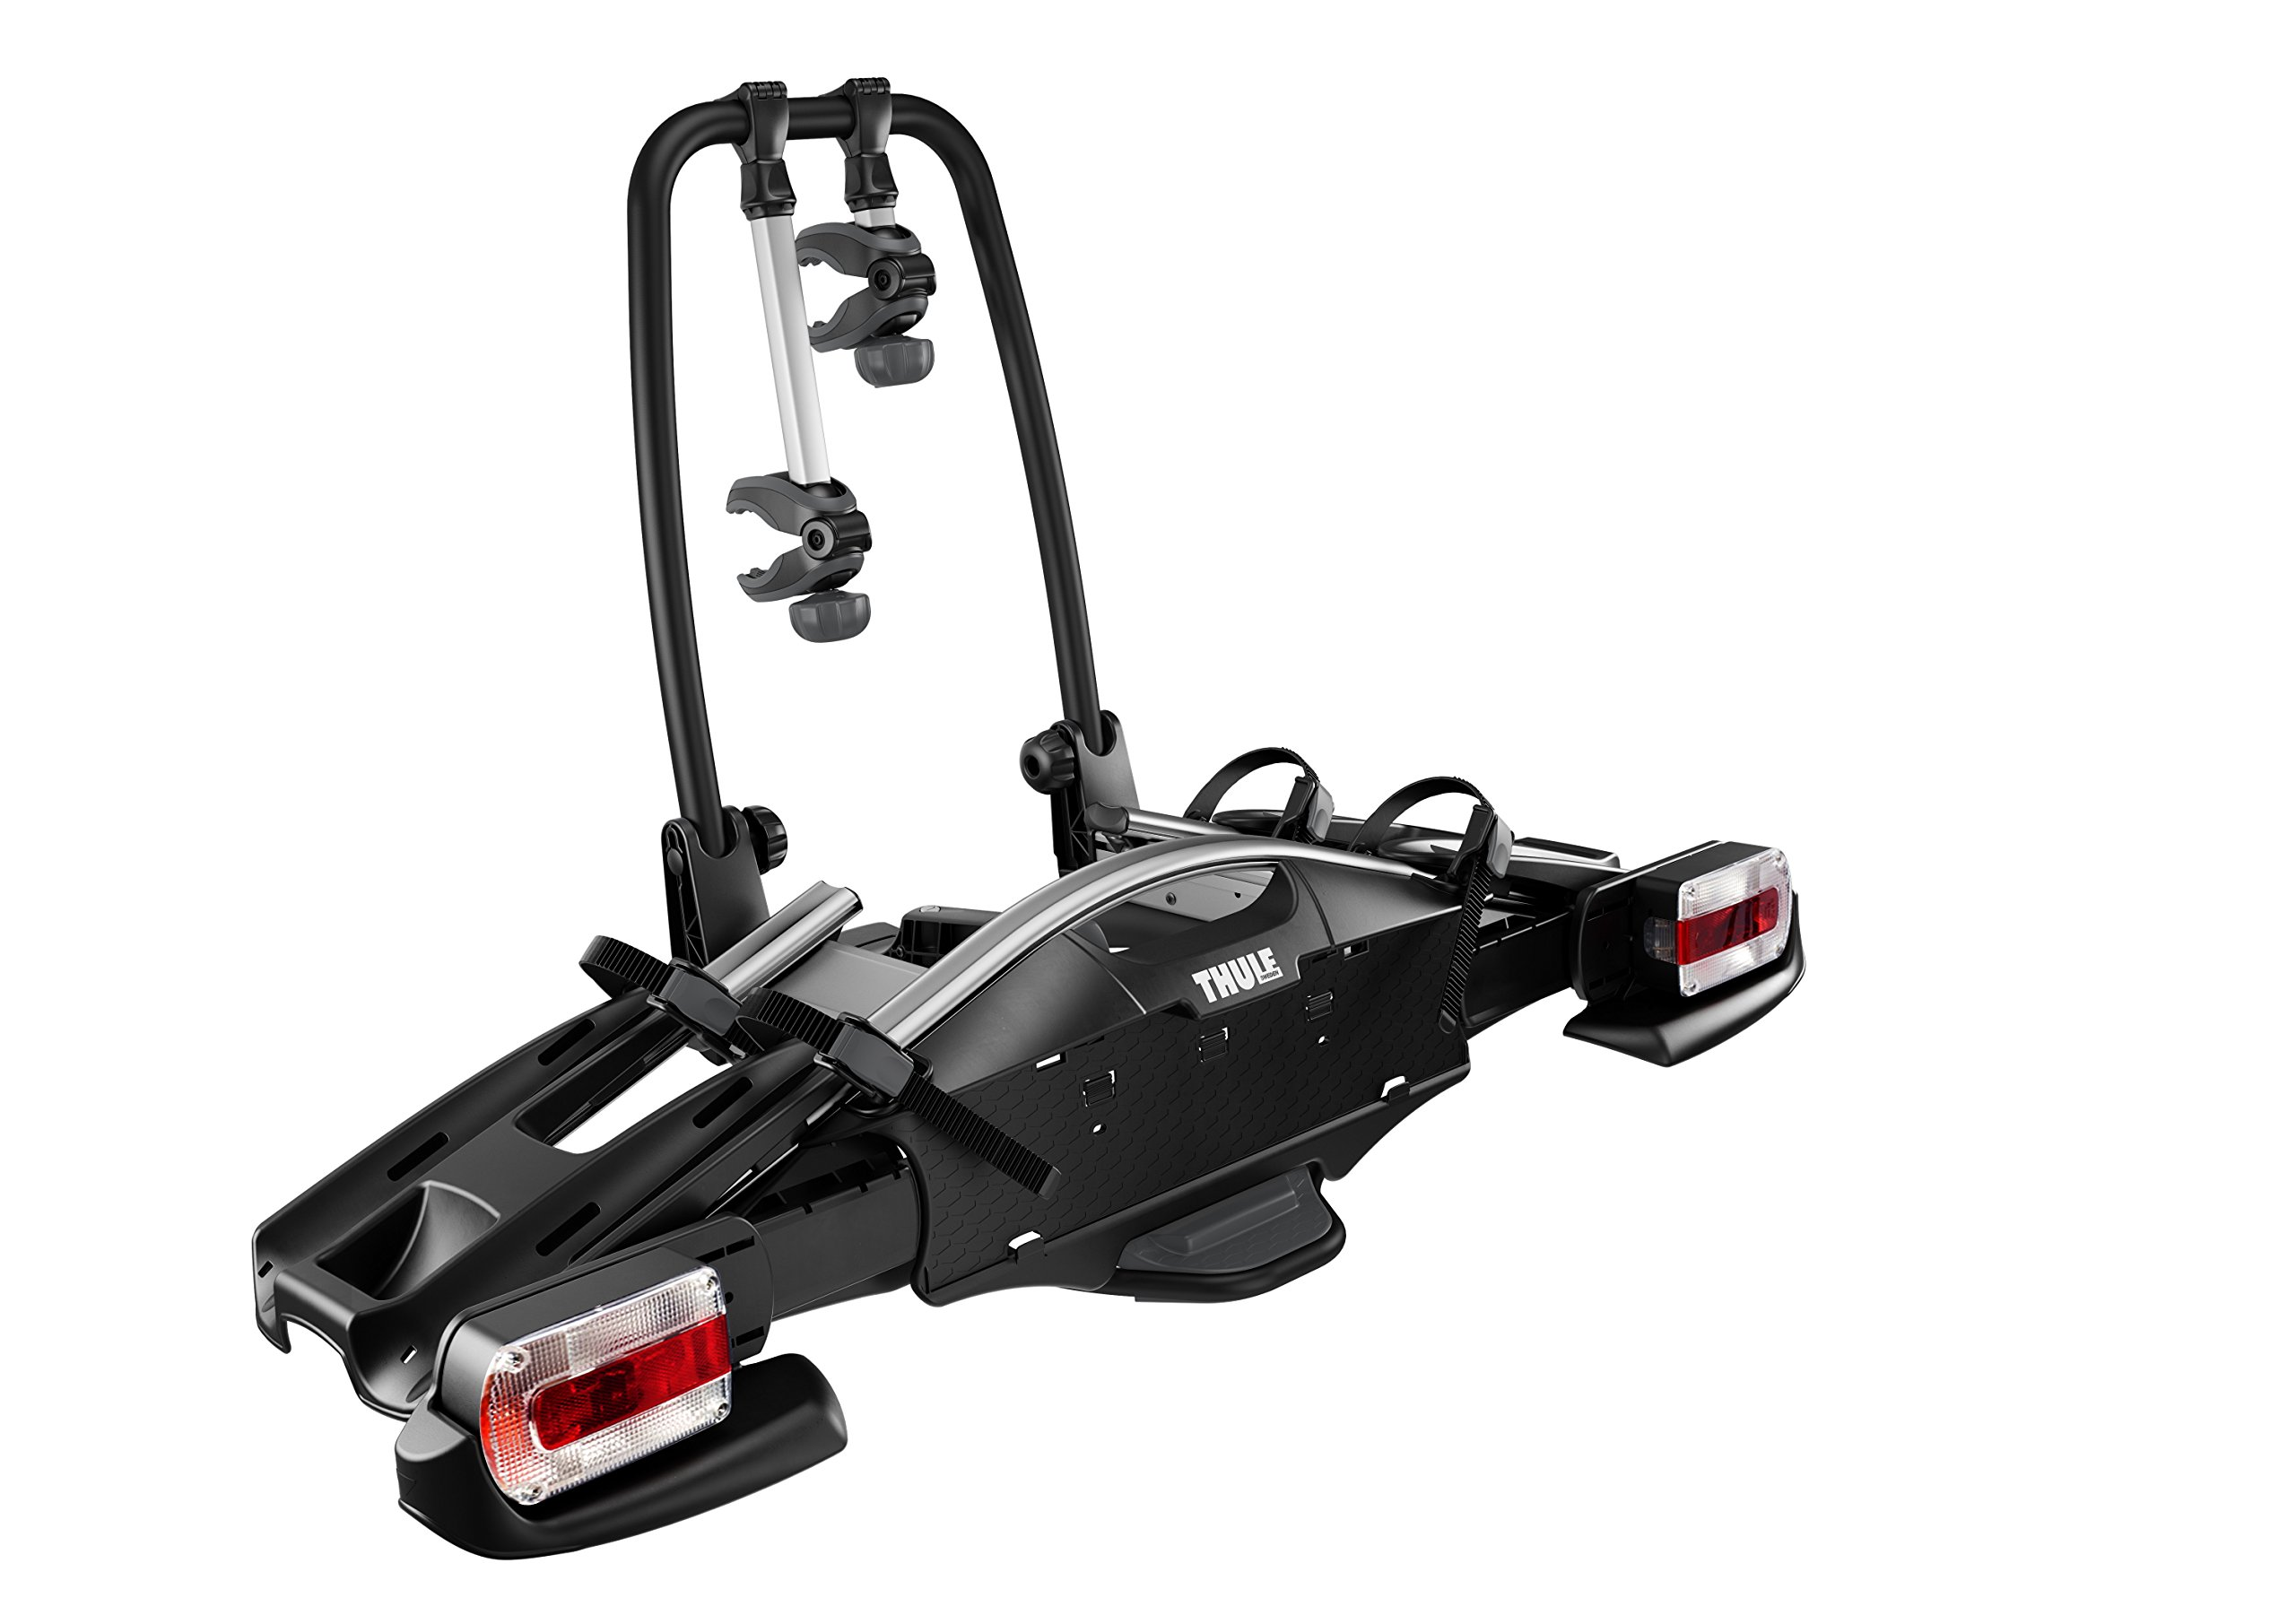 Thule 925001,Velo Compact 925, 2Bike, Towball Carrier, 7 pin 1